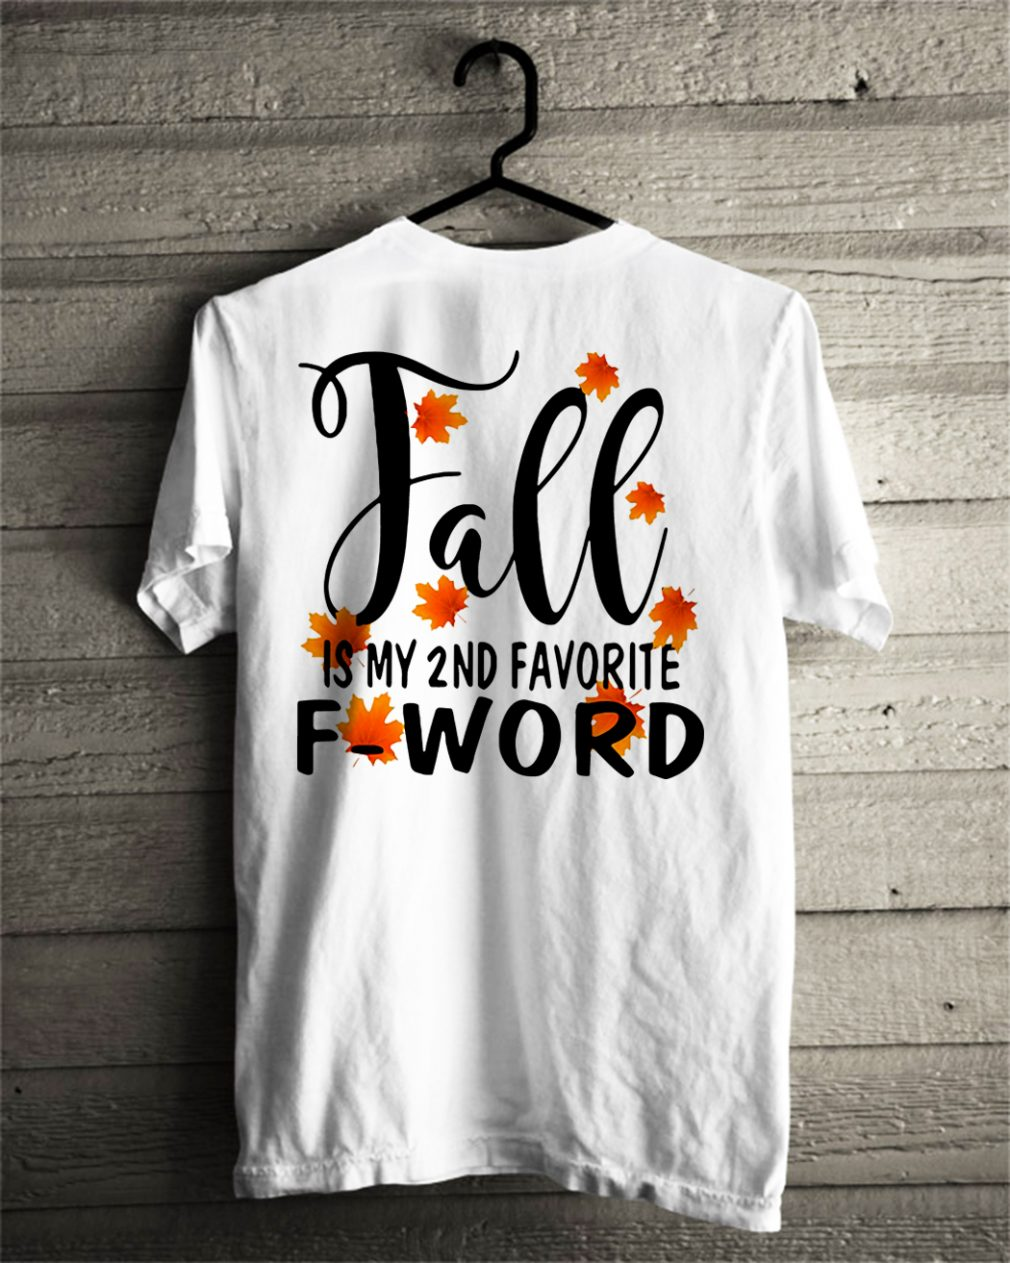 Fall is my 2nd favorite f-word shirt